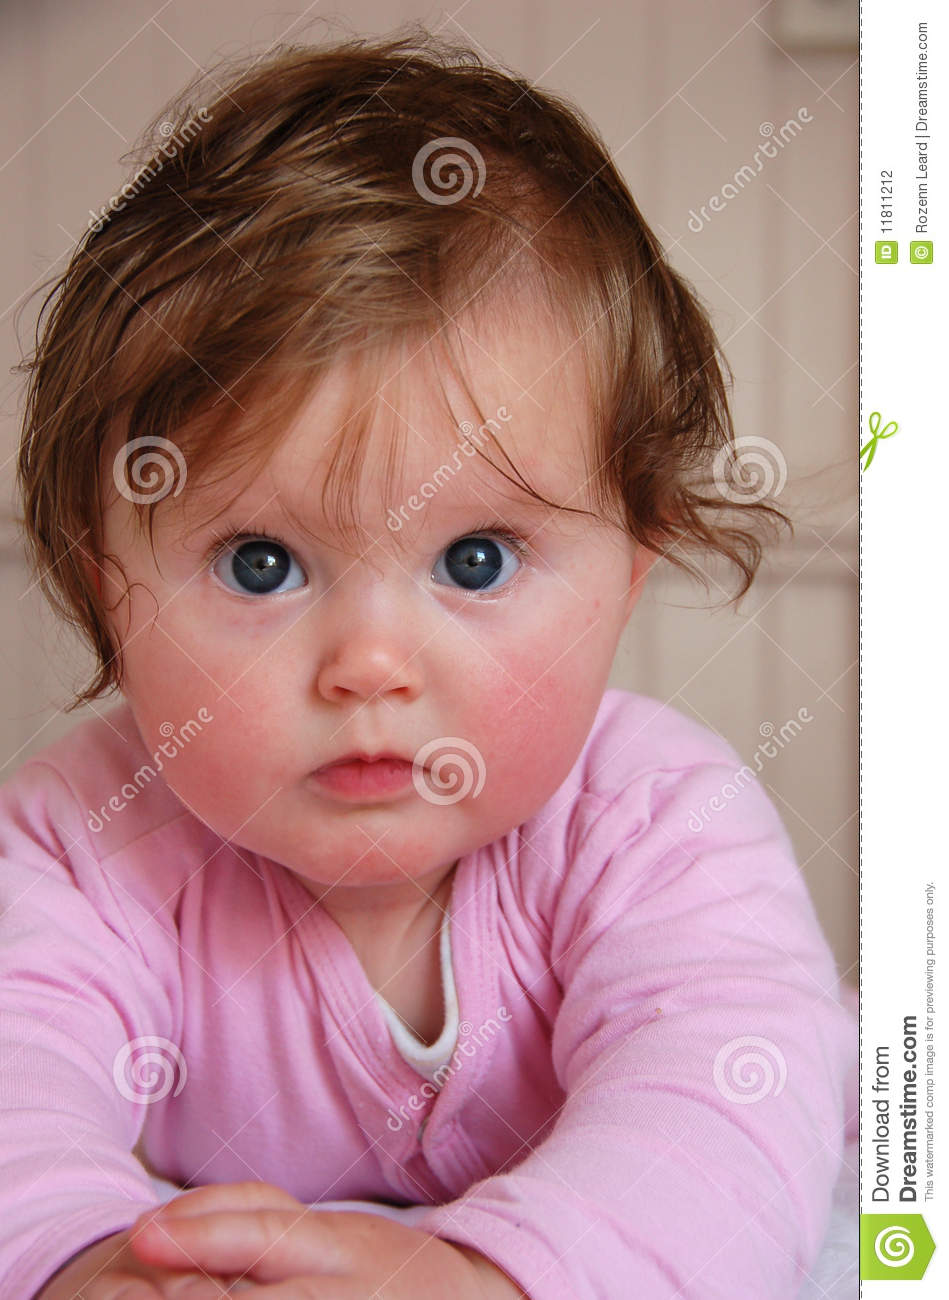 cute blue eyed baby girl stock photo. image of infant - 11811212